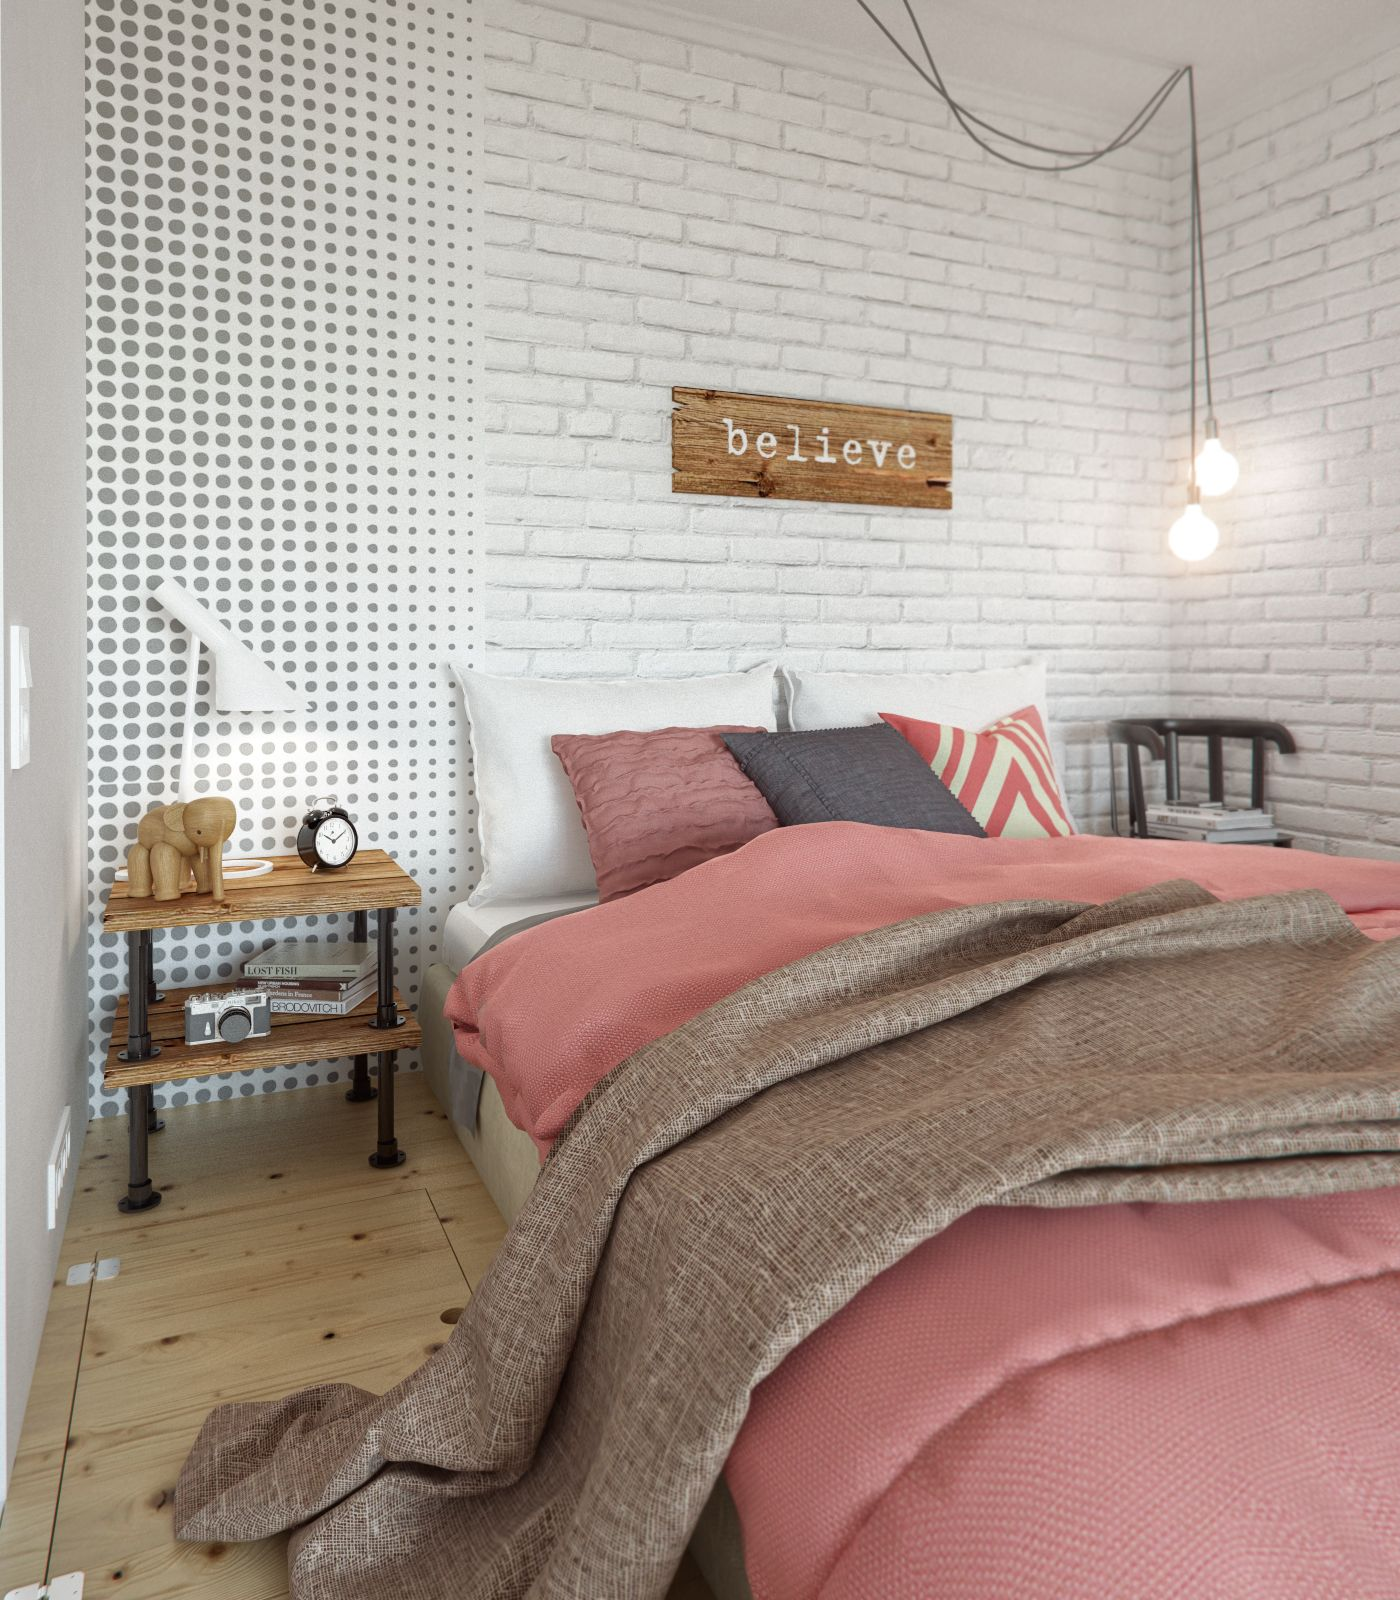 6-home-bedroom-design-with-pink-blanket-and-white-pillow-and-dual-layers-bed-desk